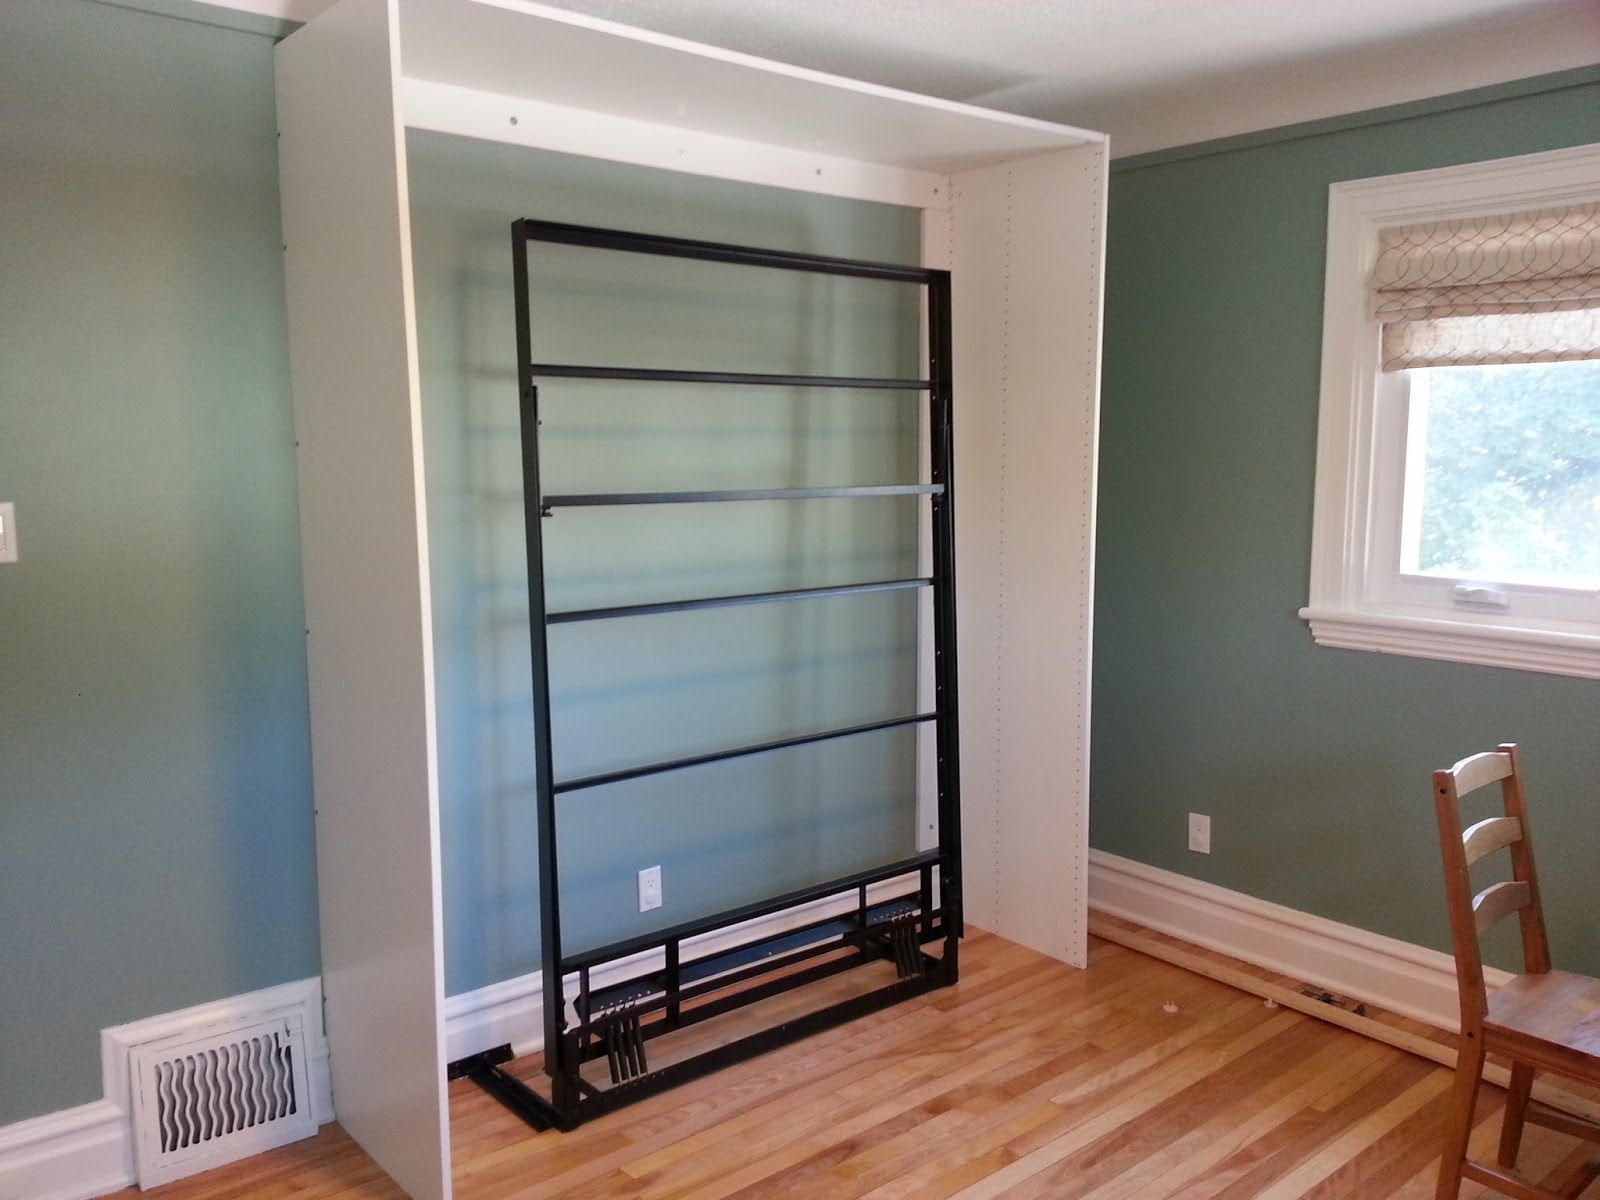 renovations and old houses diy ikea murphy bed - Murphy Bed Design Ideas